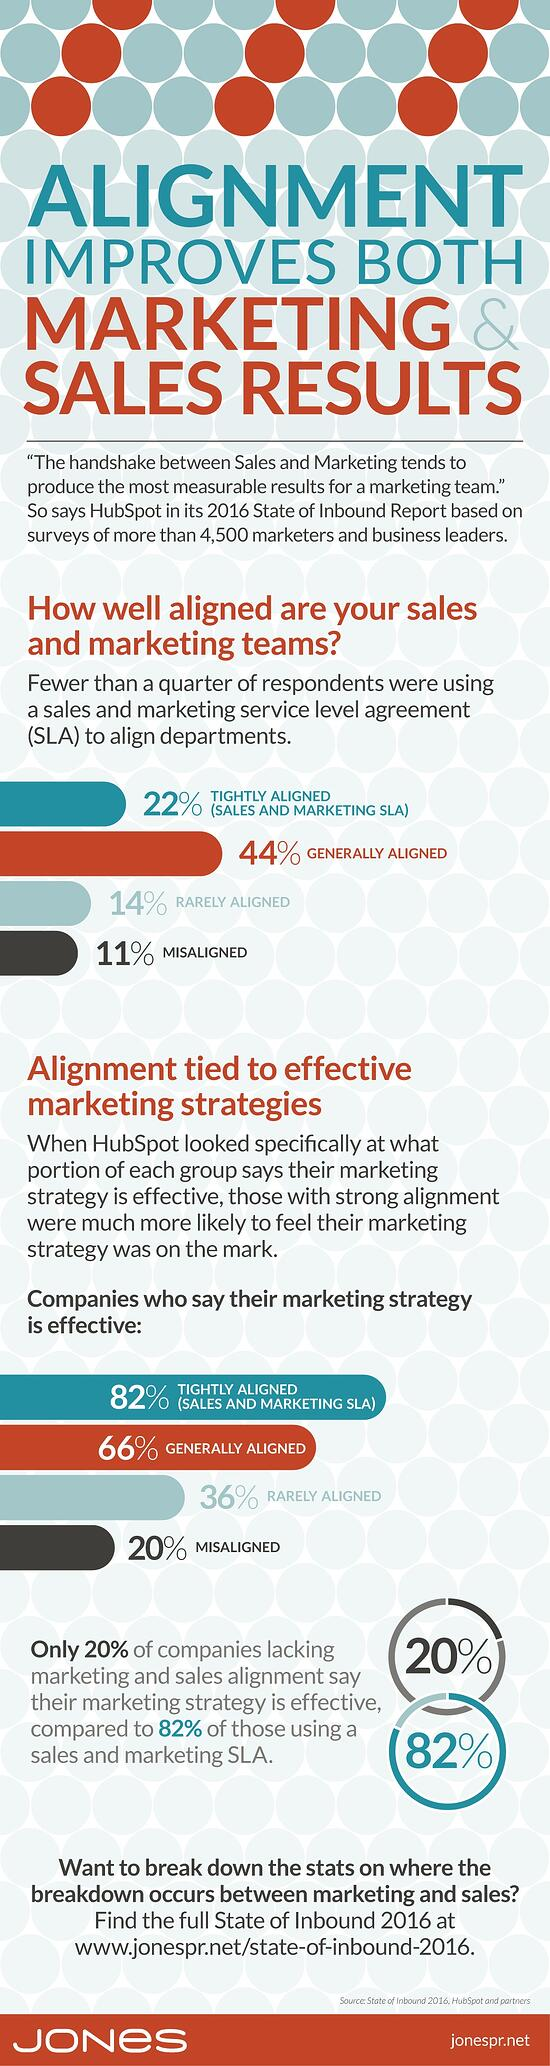 Alignment Improves Both Marketing & Sales Results